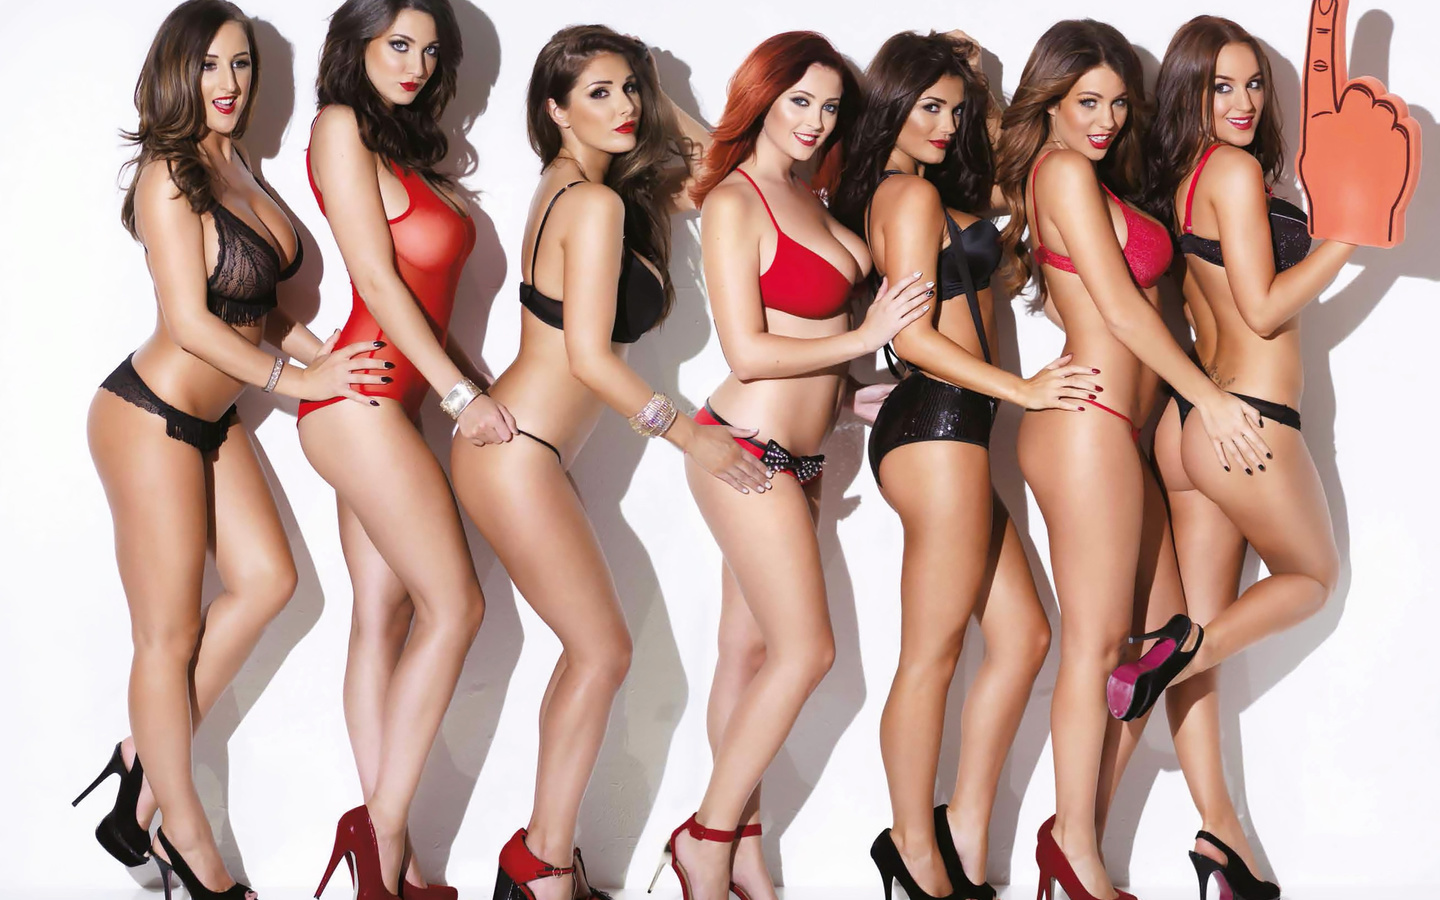 lucy pinder, friends, lingerie, sexy, model, heels, foam finger, , hotties, cute, ladies, , hair, , beautys, stacey poole, holly peers, rosie jones, ucy collett, joey fisher, lucy collett, http://www.nastol.com.ua/ero/109215-holly-peers-india-reynolds-joe